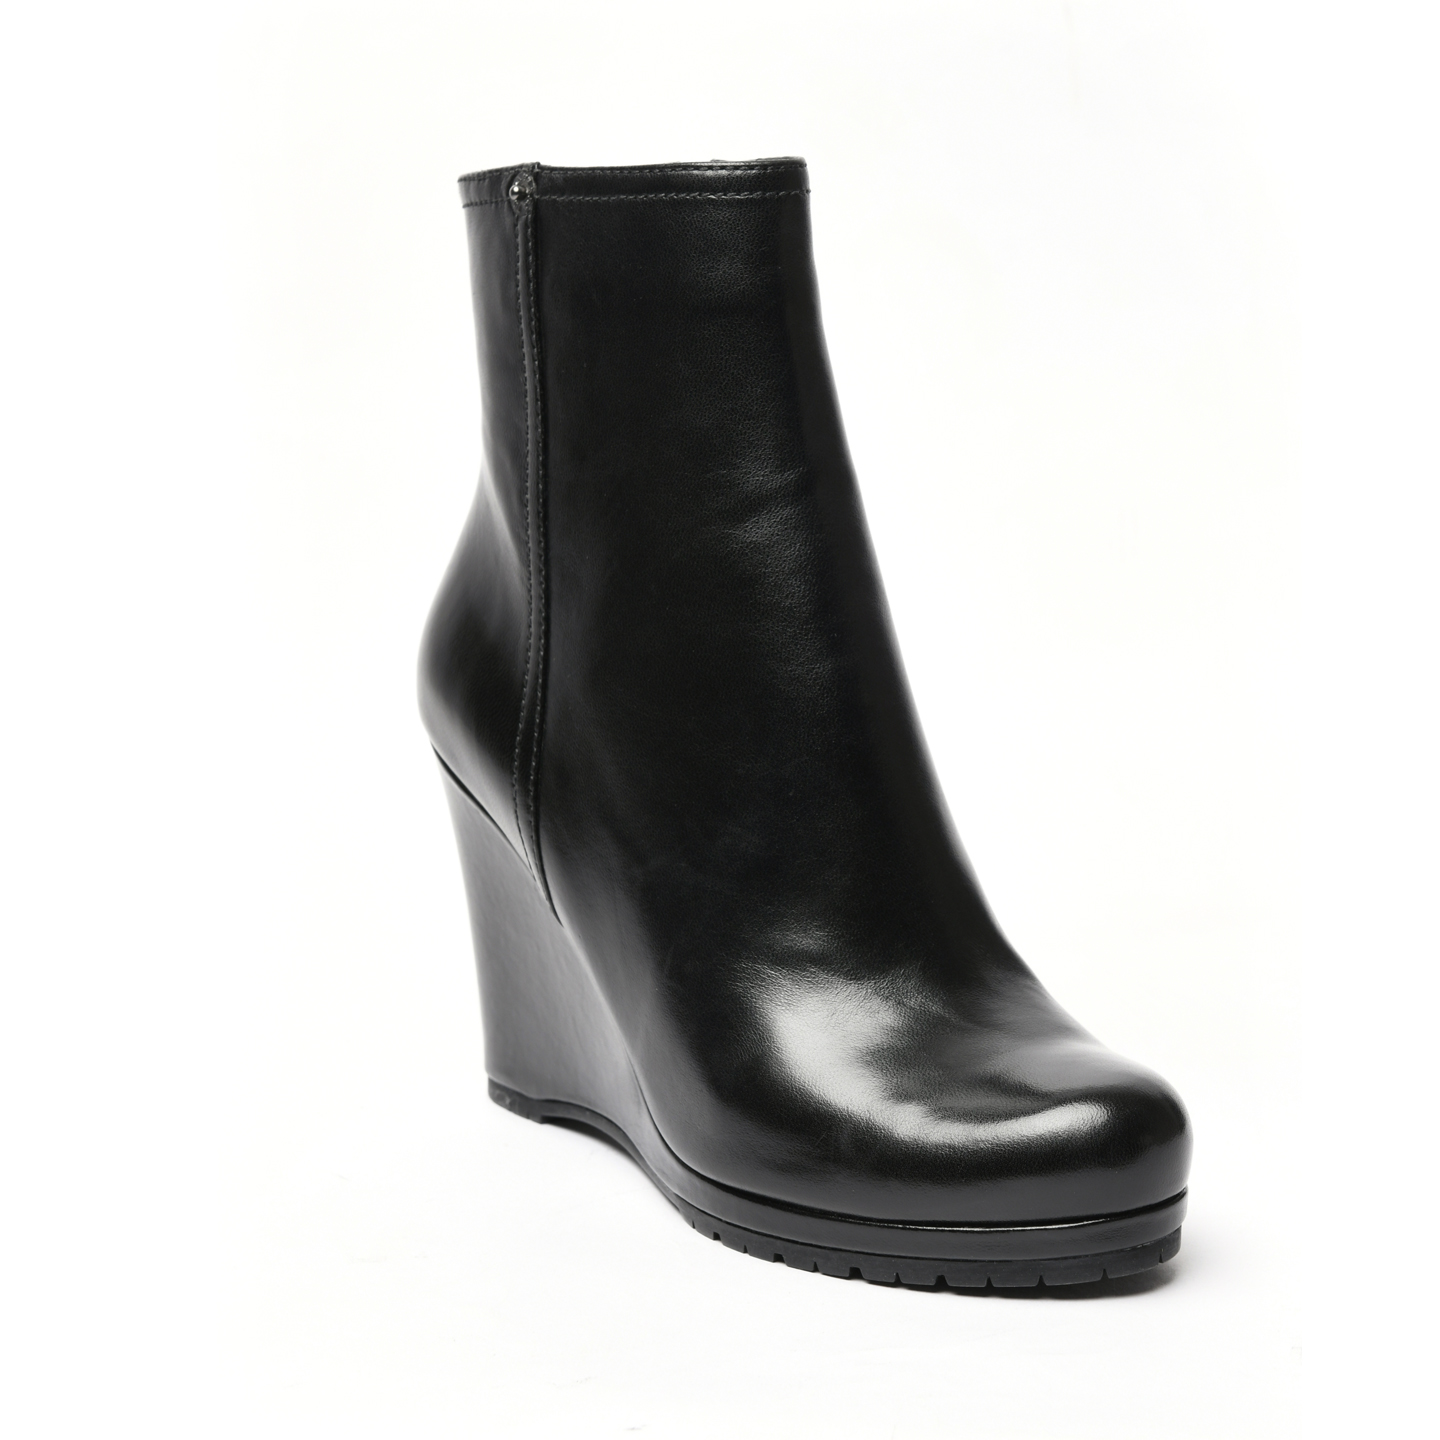 new concept 57e44 4d928 Prada Calzature Donna Ankle Wedge Boots, Size 36.5 - LabelCentric